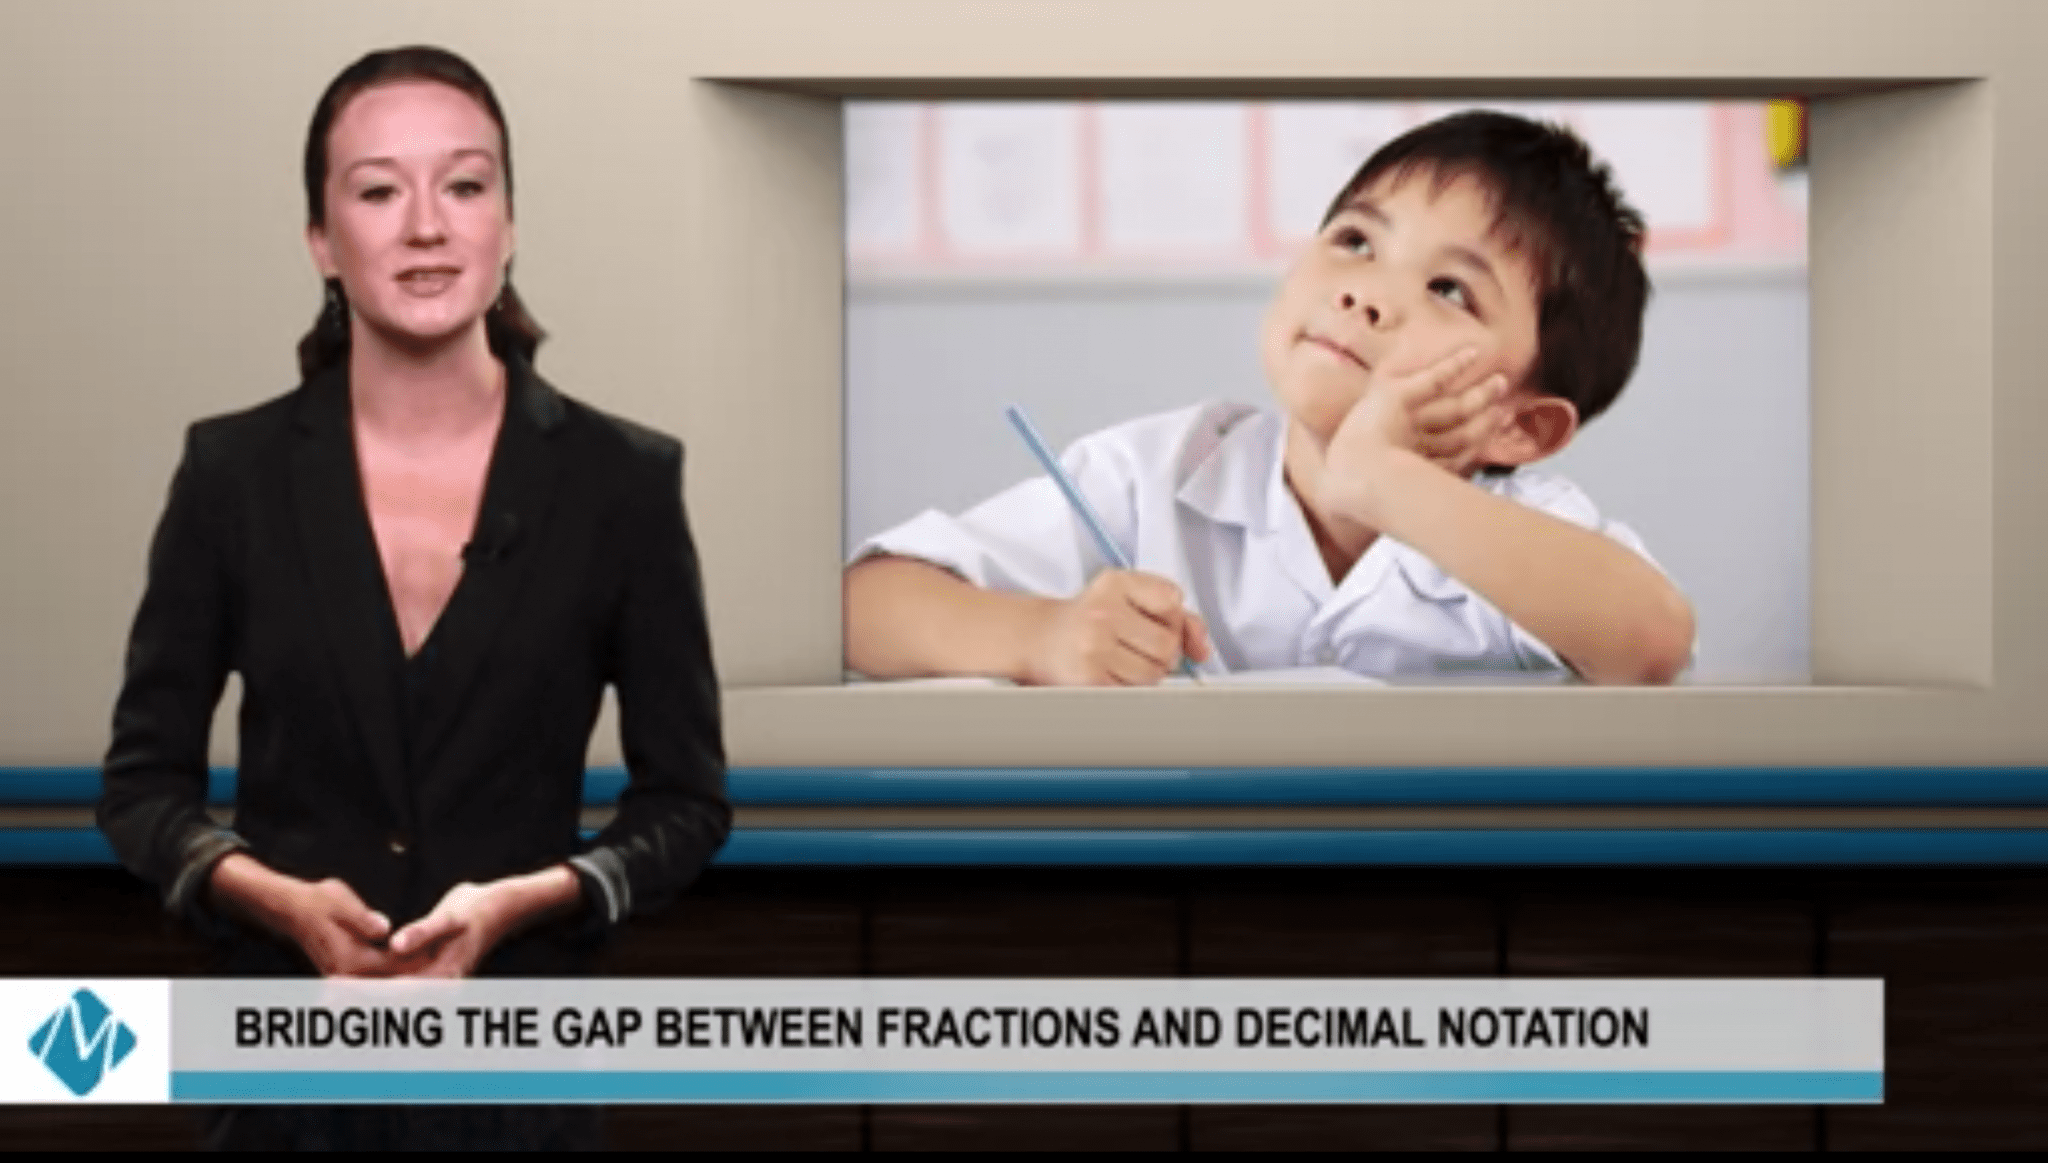 woman in black suit next to image of young math student   bridging the gab between fractions and decimal notation